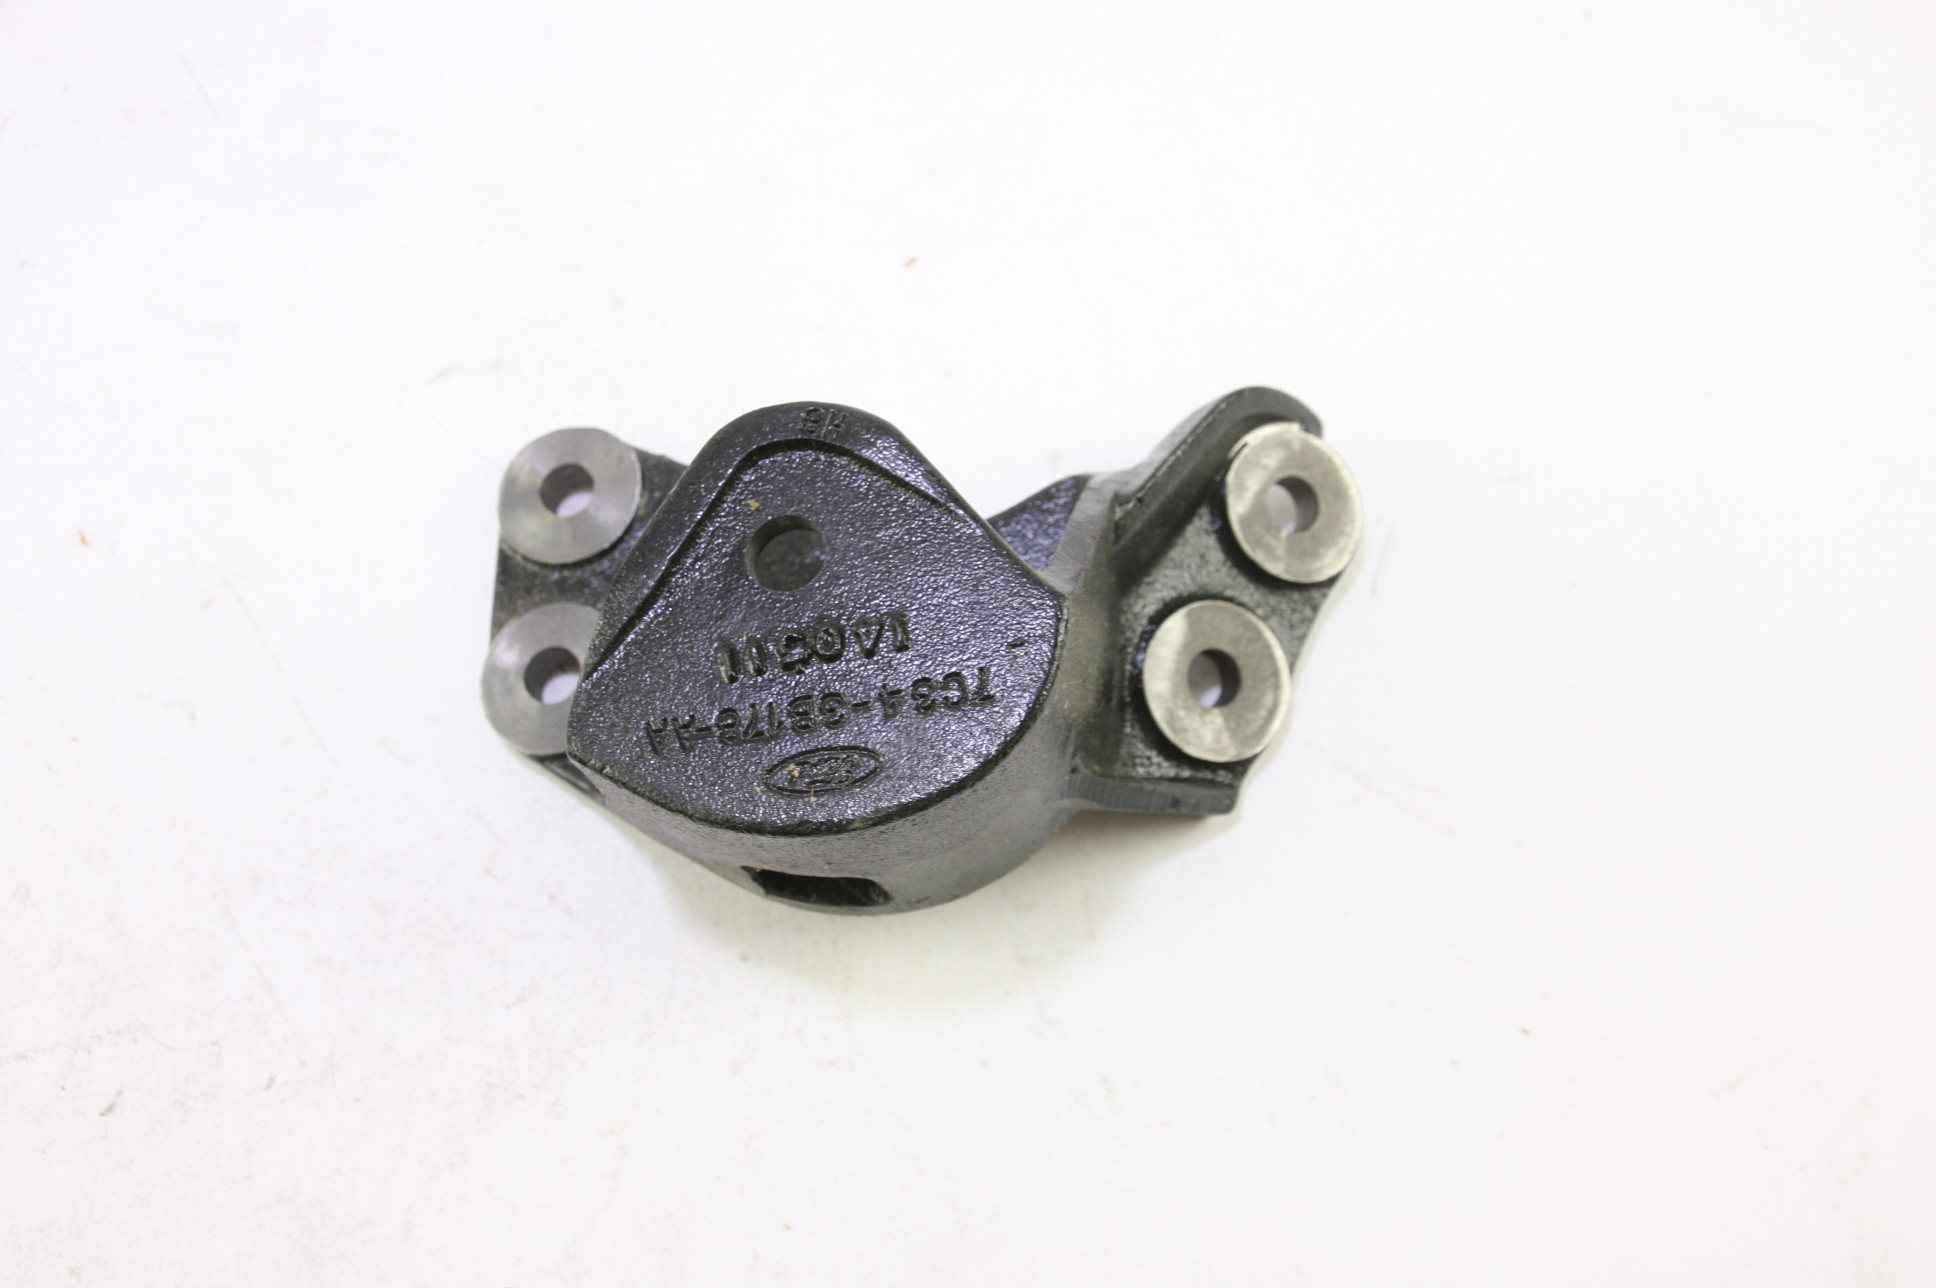 ~ New OEM 7C3Z3B178A Ford Front Suspension Axle Beam Pivot Bracket Right - image 3